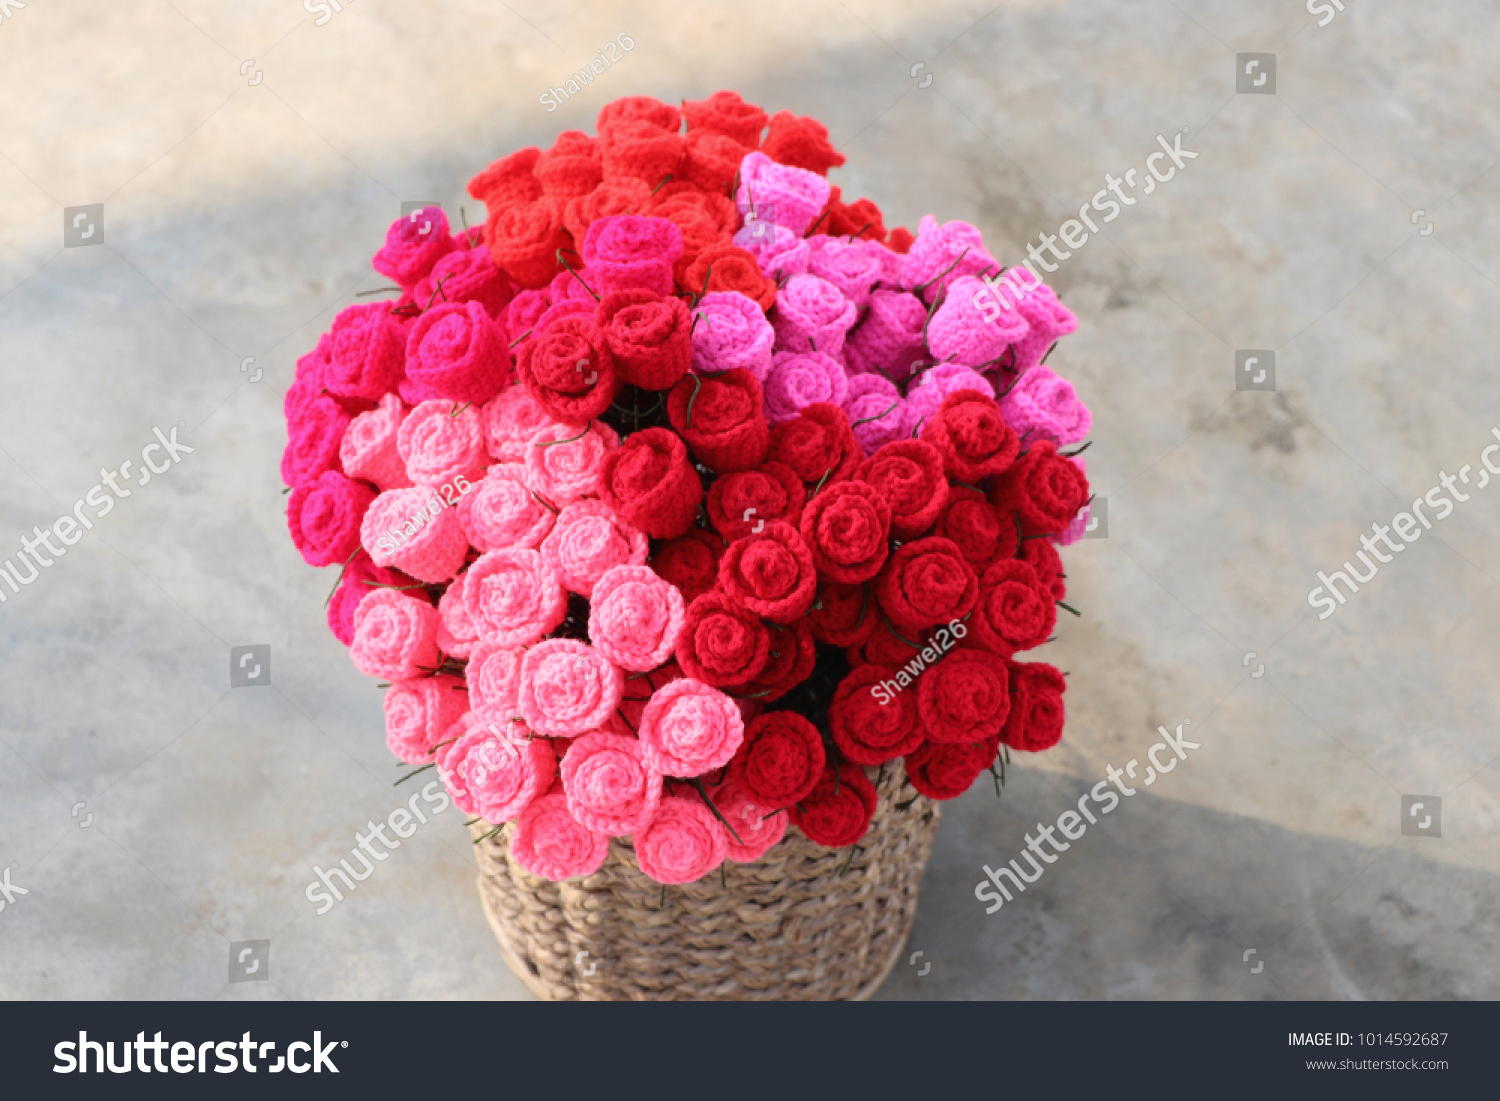 Bouquet colorful crochet roses basket on stock photo edit now bouquet of colorful crochet roses in basket on cement floor handmade crochet flowers valentines izmirmasajfo